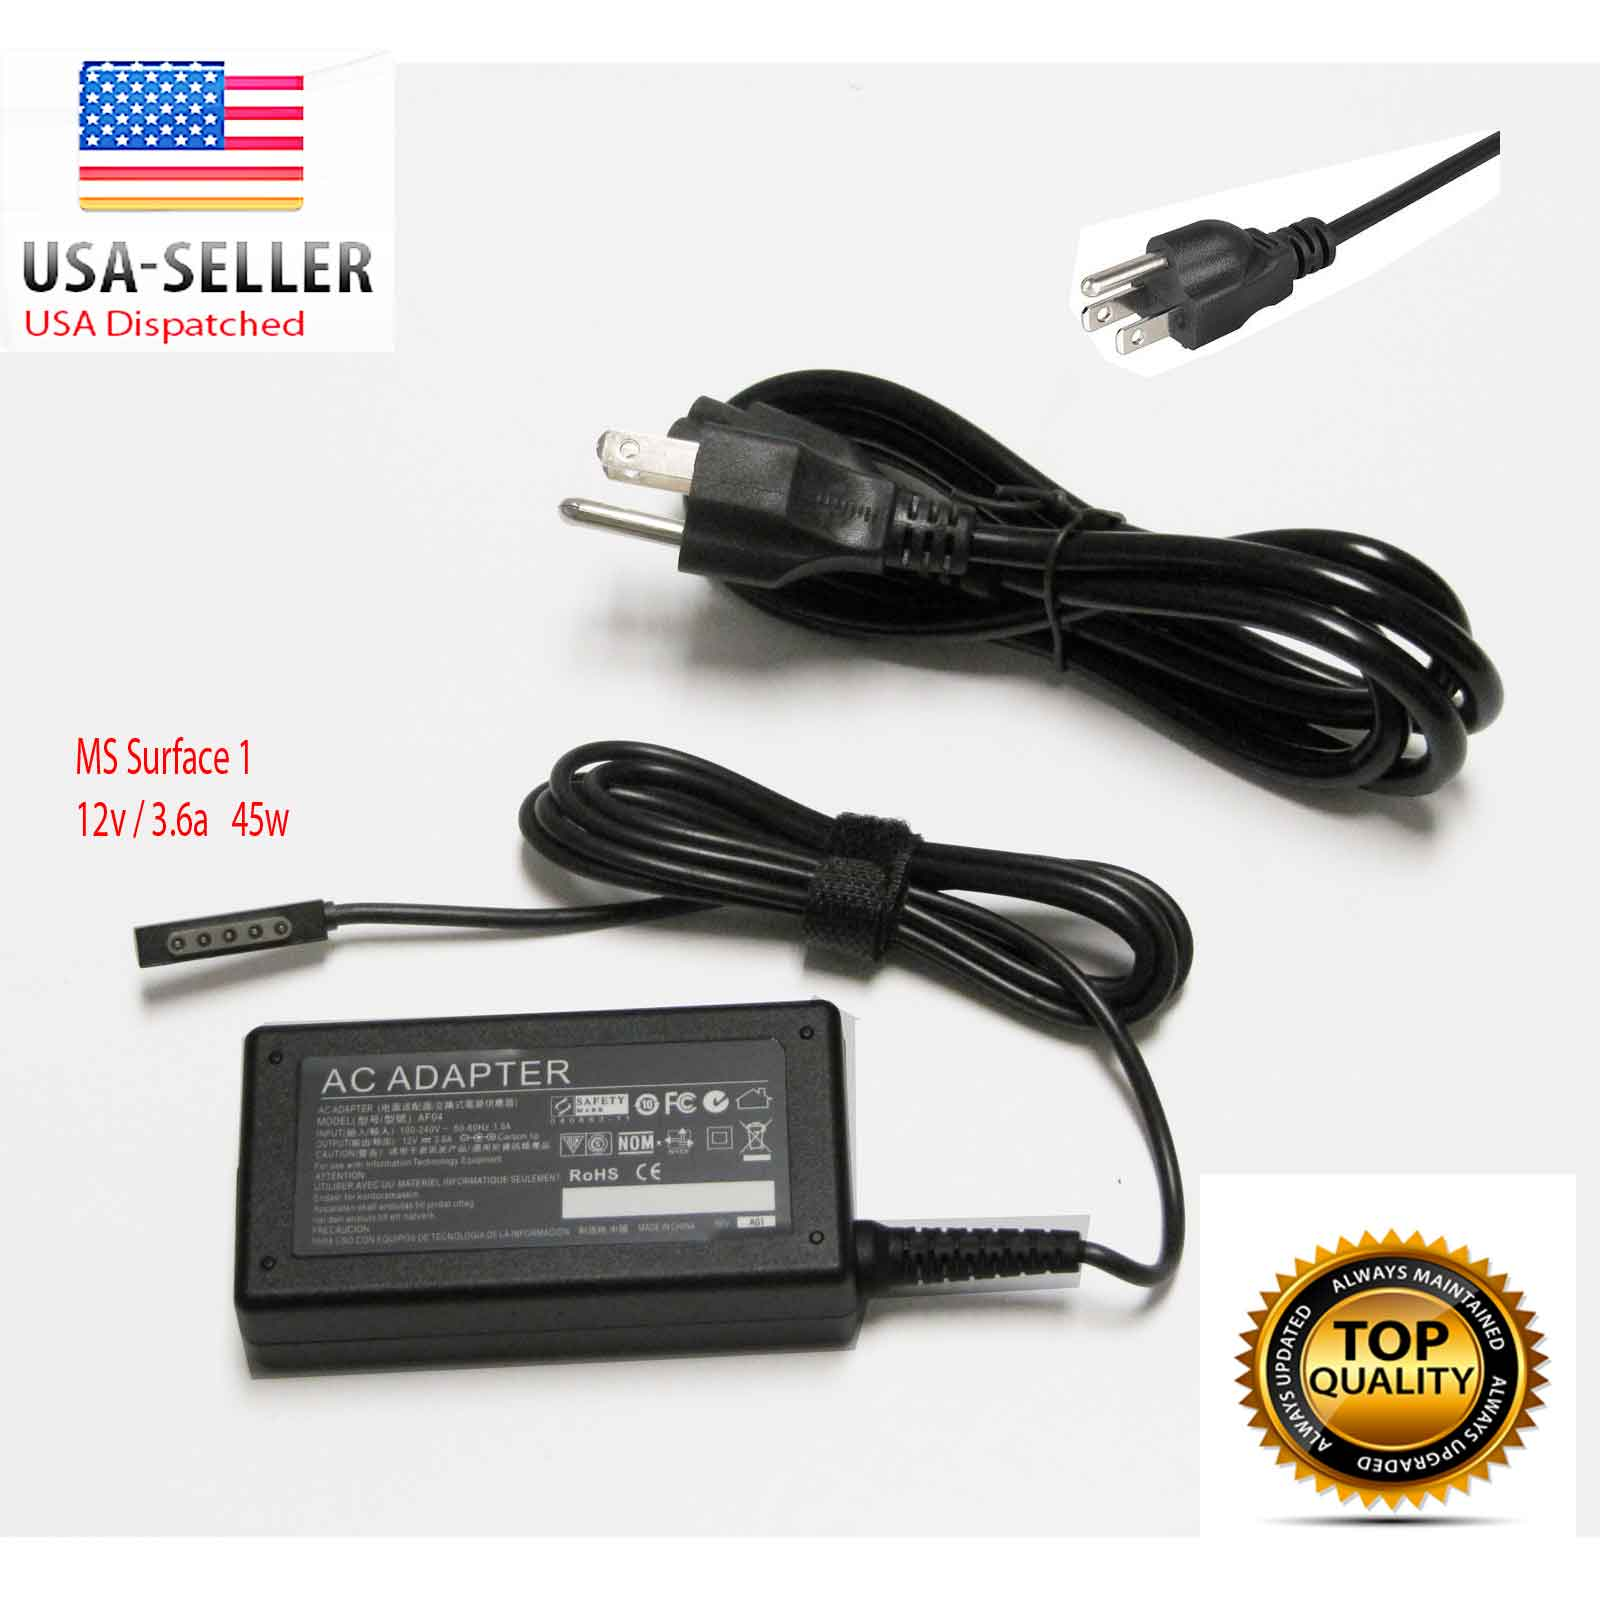 AC Adapter Charger Power Supply Cord For Microsoft Surface Pro /RT 12V 3.6A 48W Laptop Power Supply Charger Cord Plug (ZA-MS-45W)